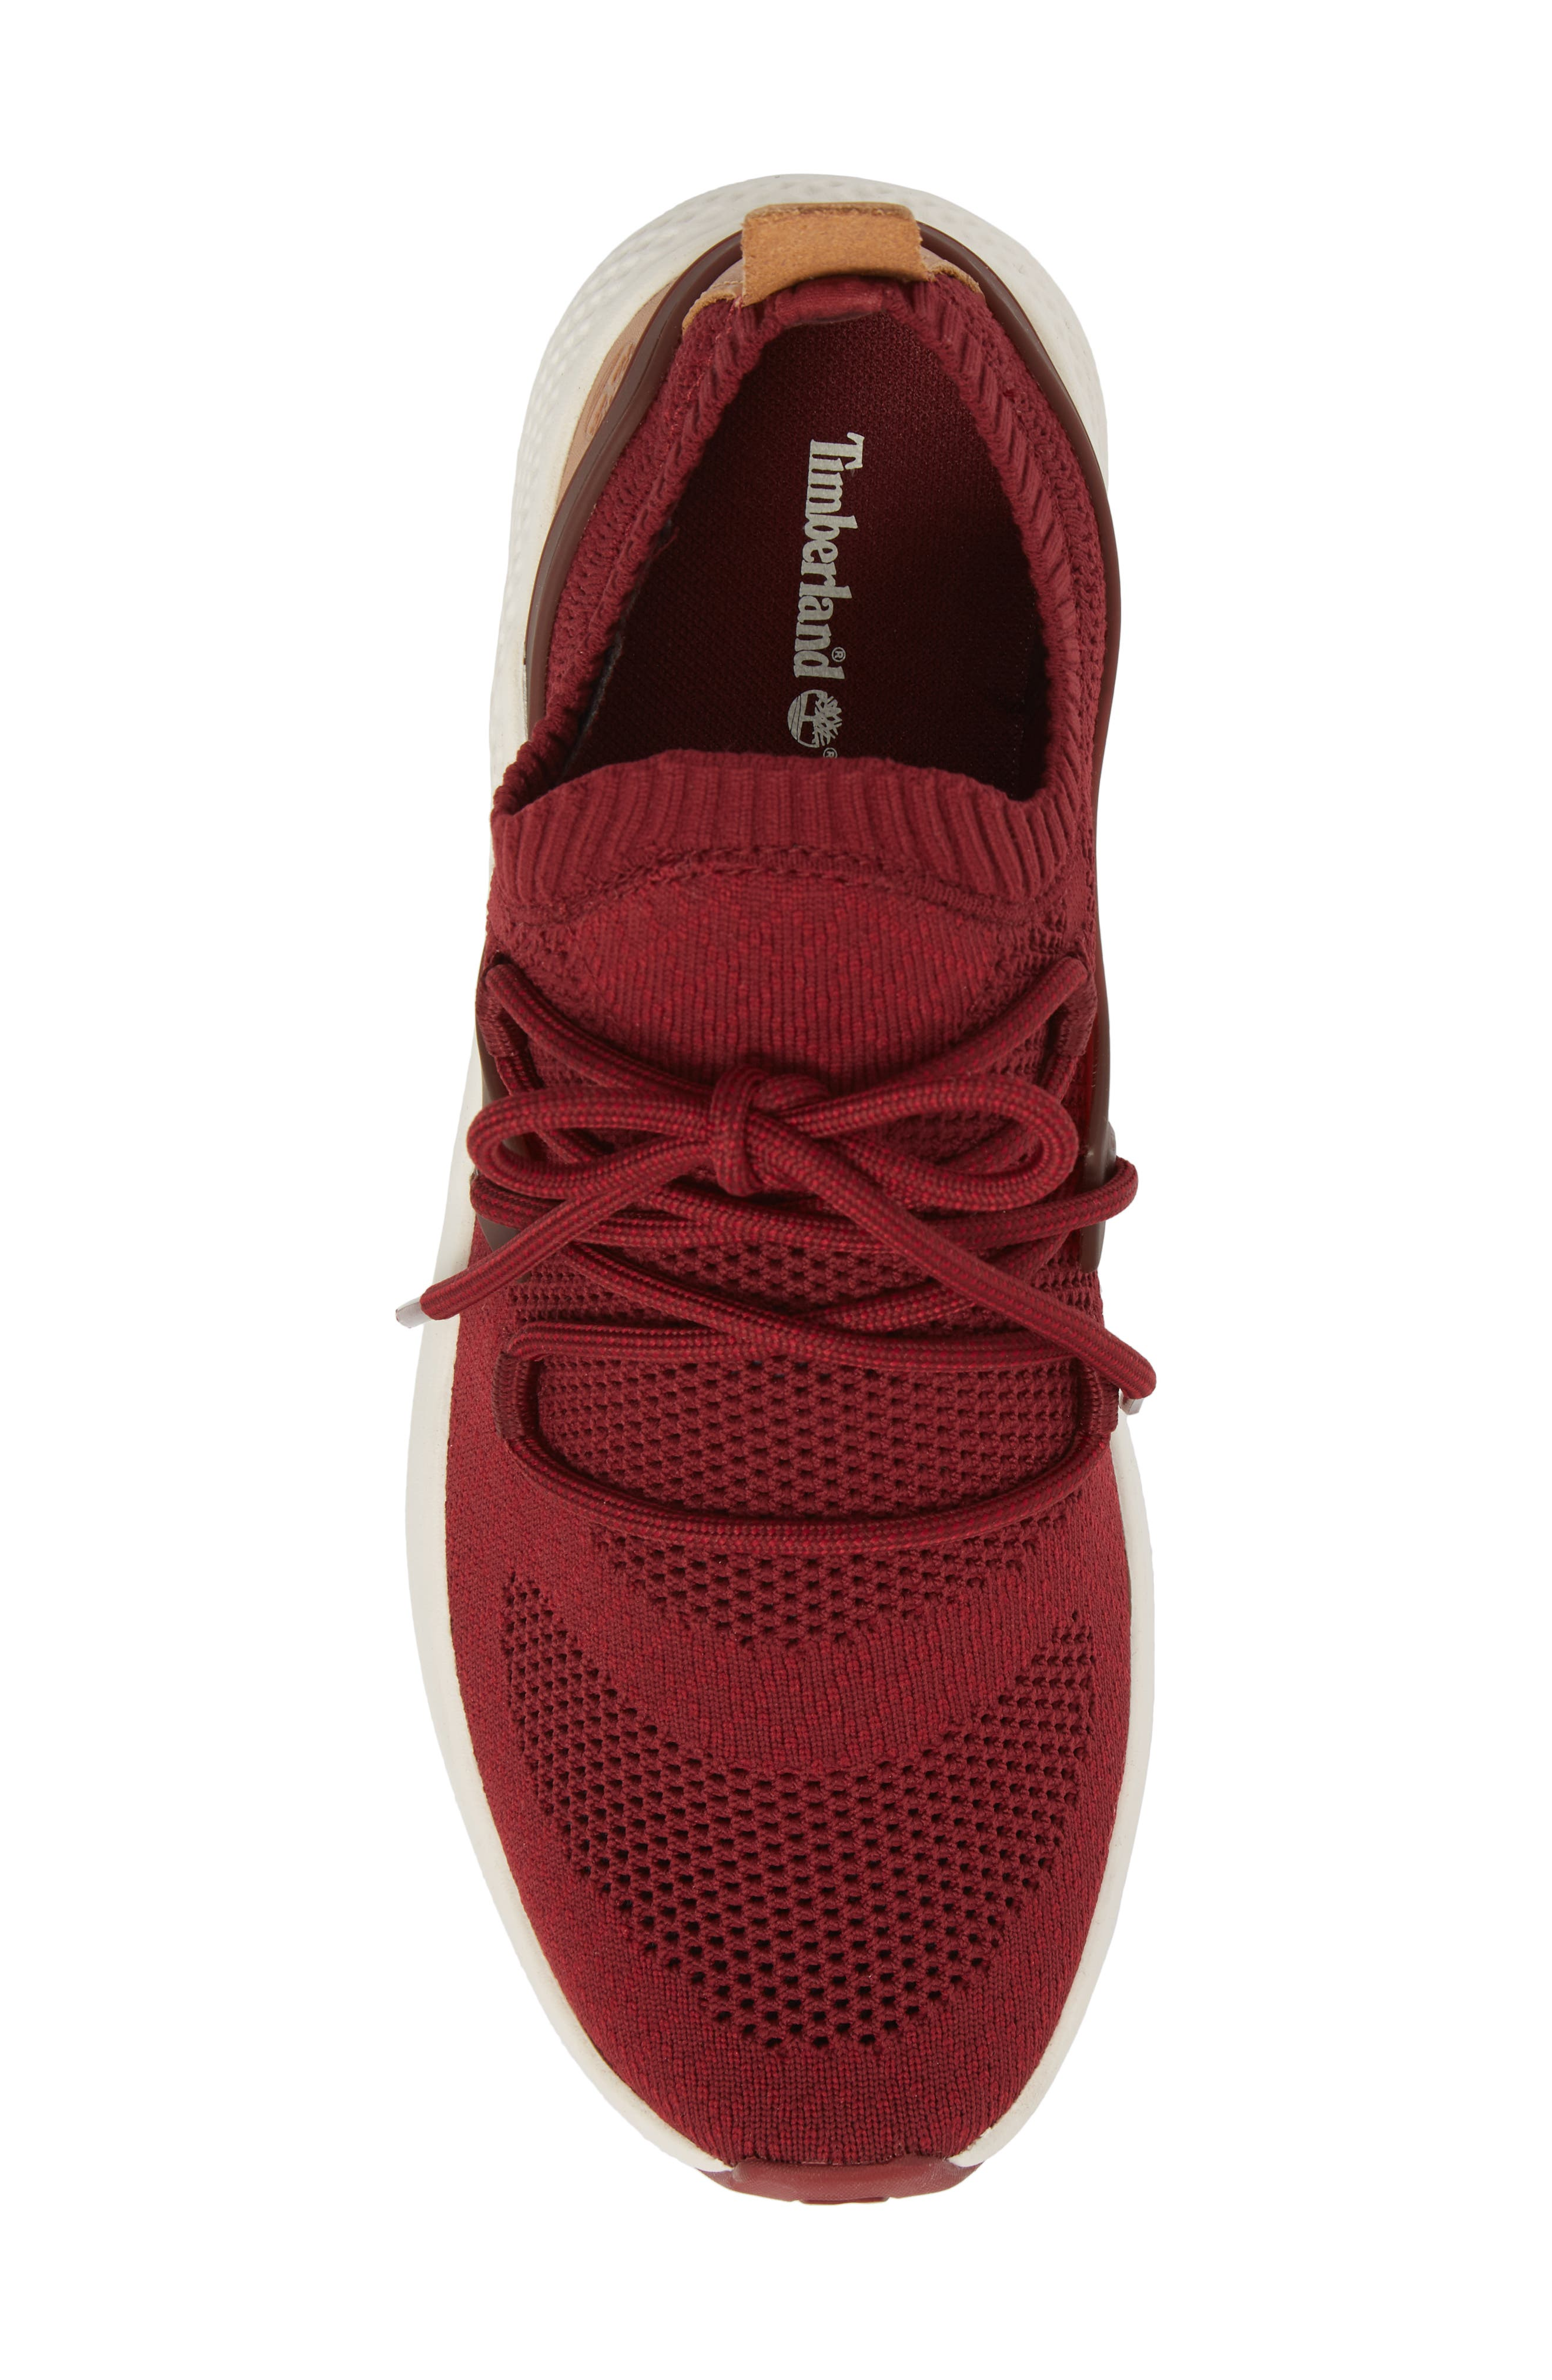 FlyRoam Sneaker,                             Alternate thumbnail 5, color,                             POMEGRANATE LEATHER